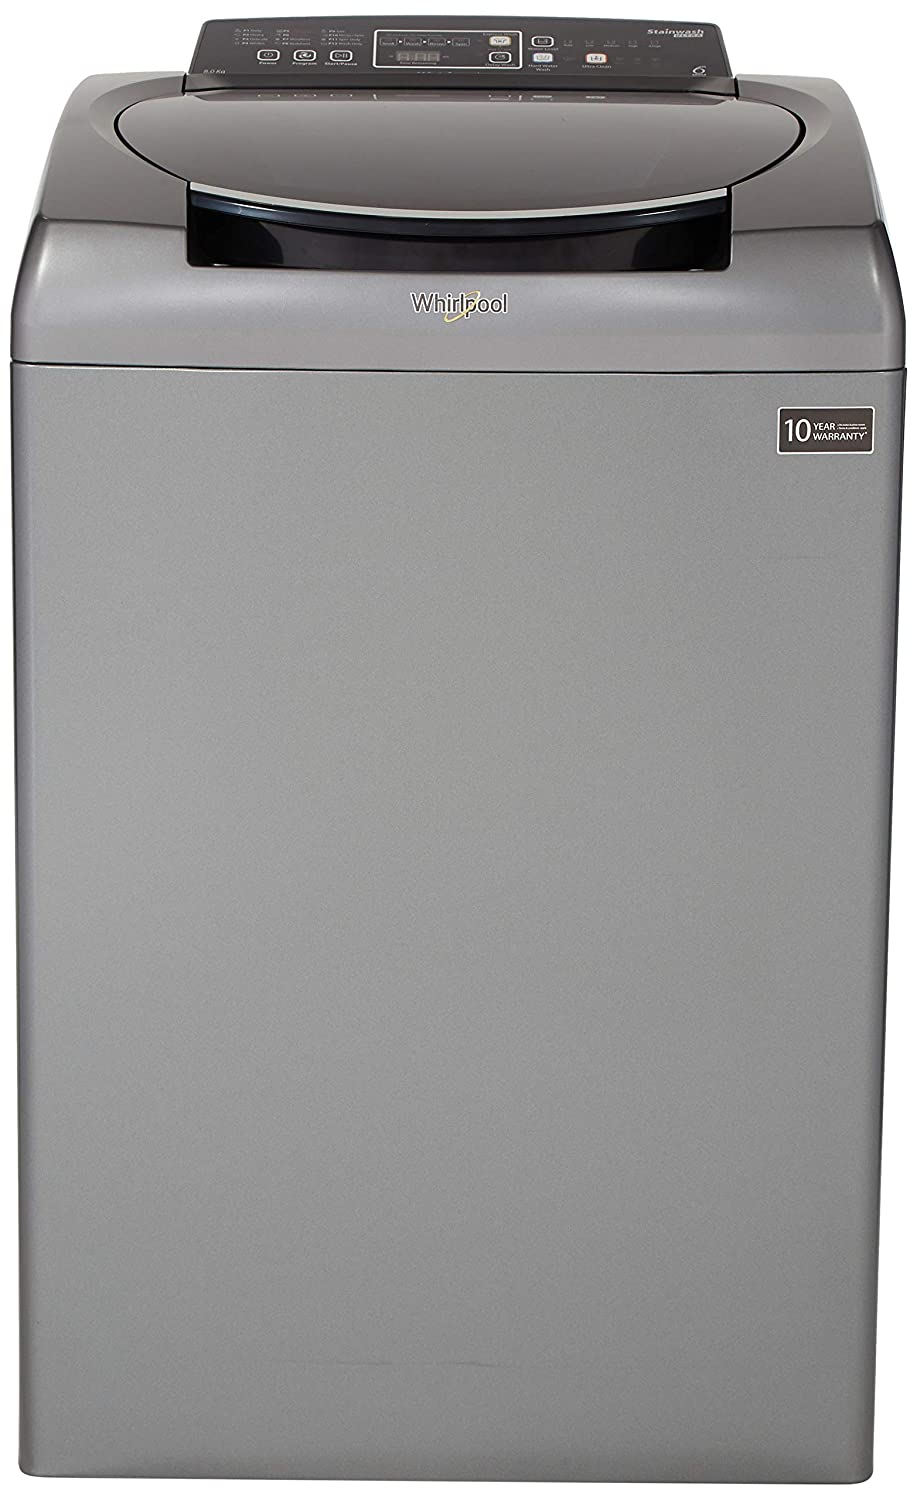 Whirlpool 8kg Automatic Top-Load